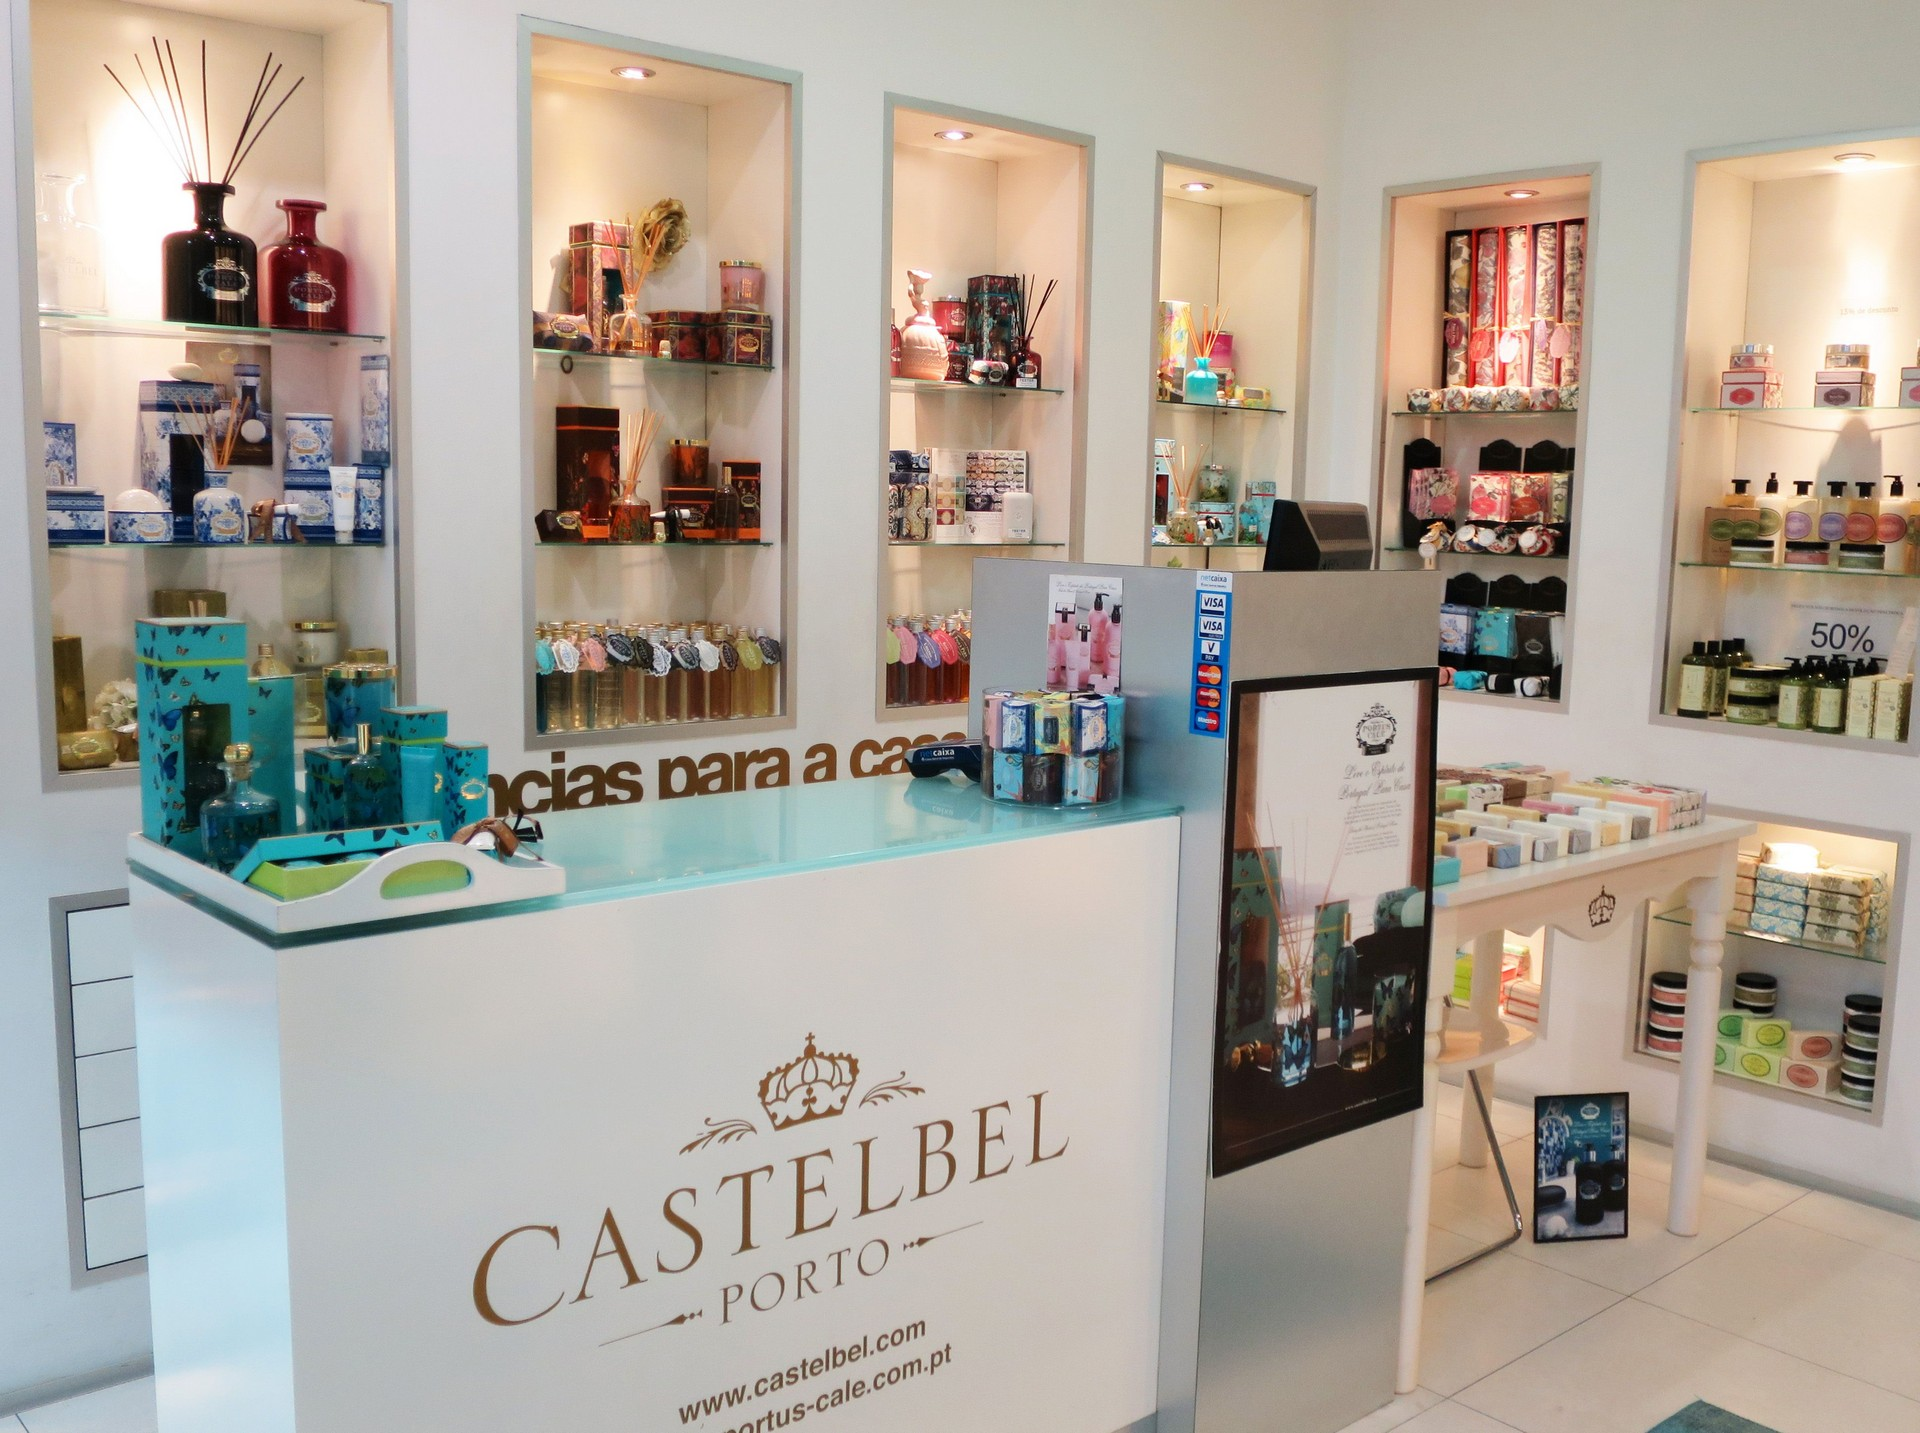 Best Luxury Stores To Be Discovered In Porto - Castelbel best luxury stores Best Luxury Stores To Be Discovered In Porto Best Luxury Stores To Be Discovered In Porto 4